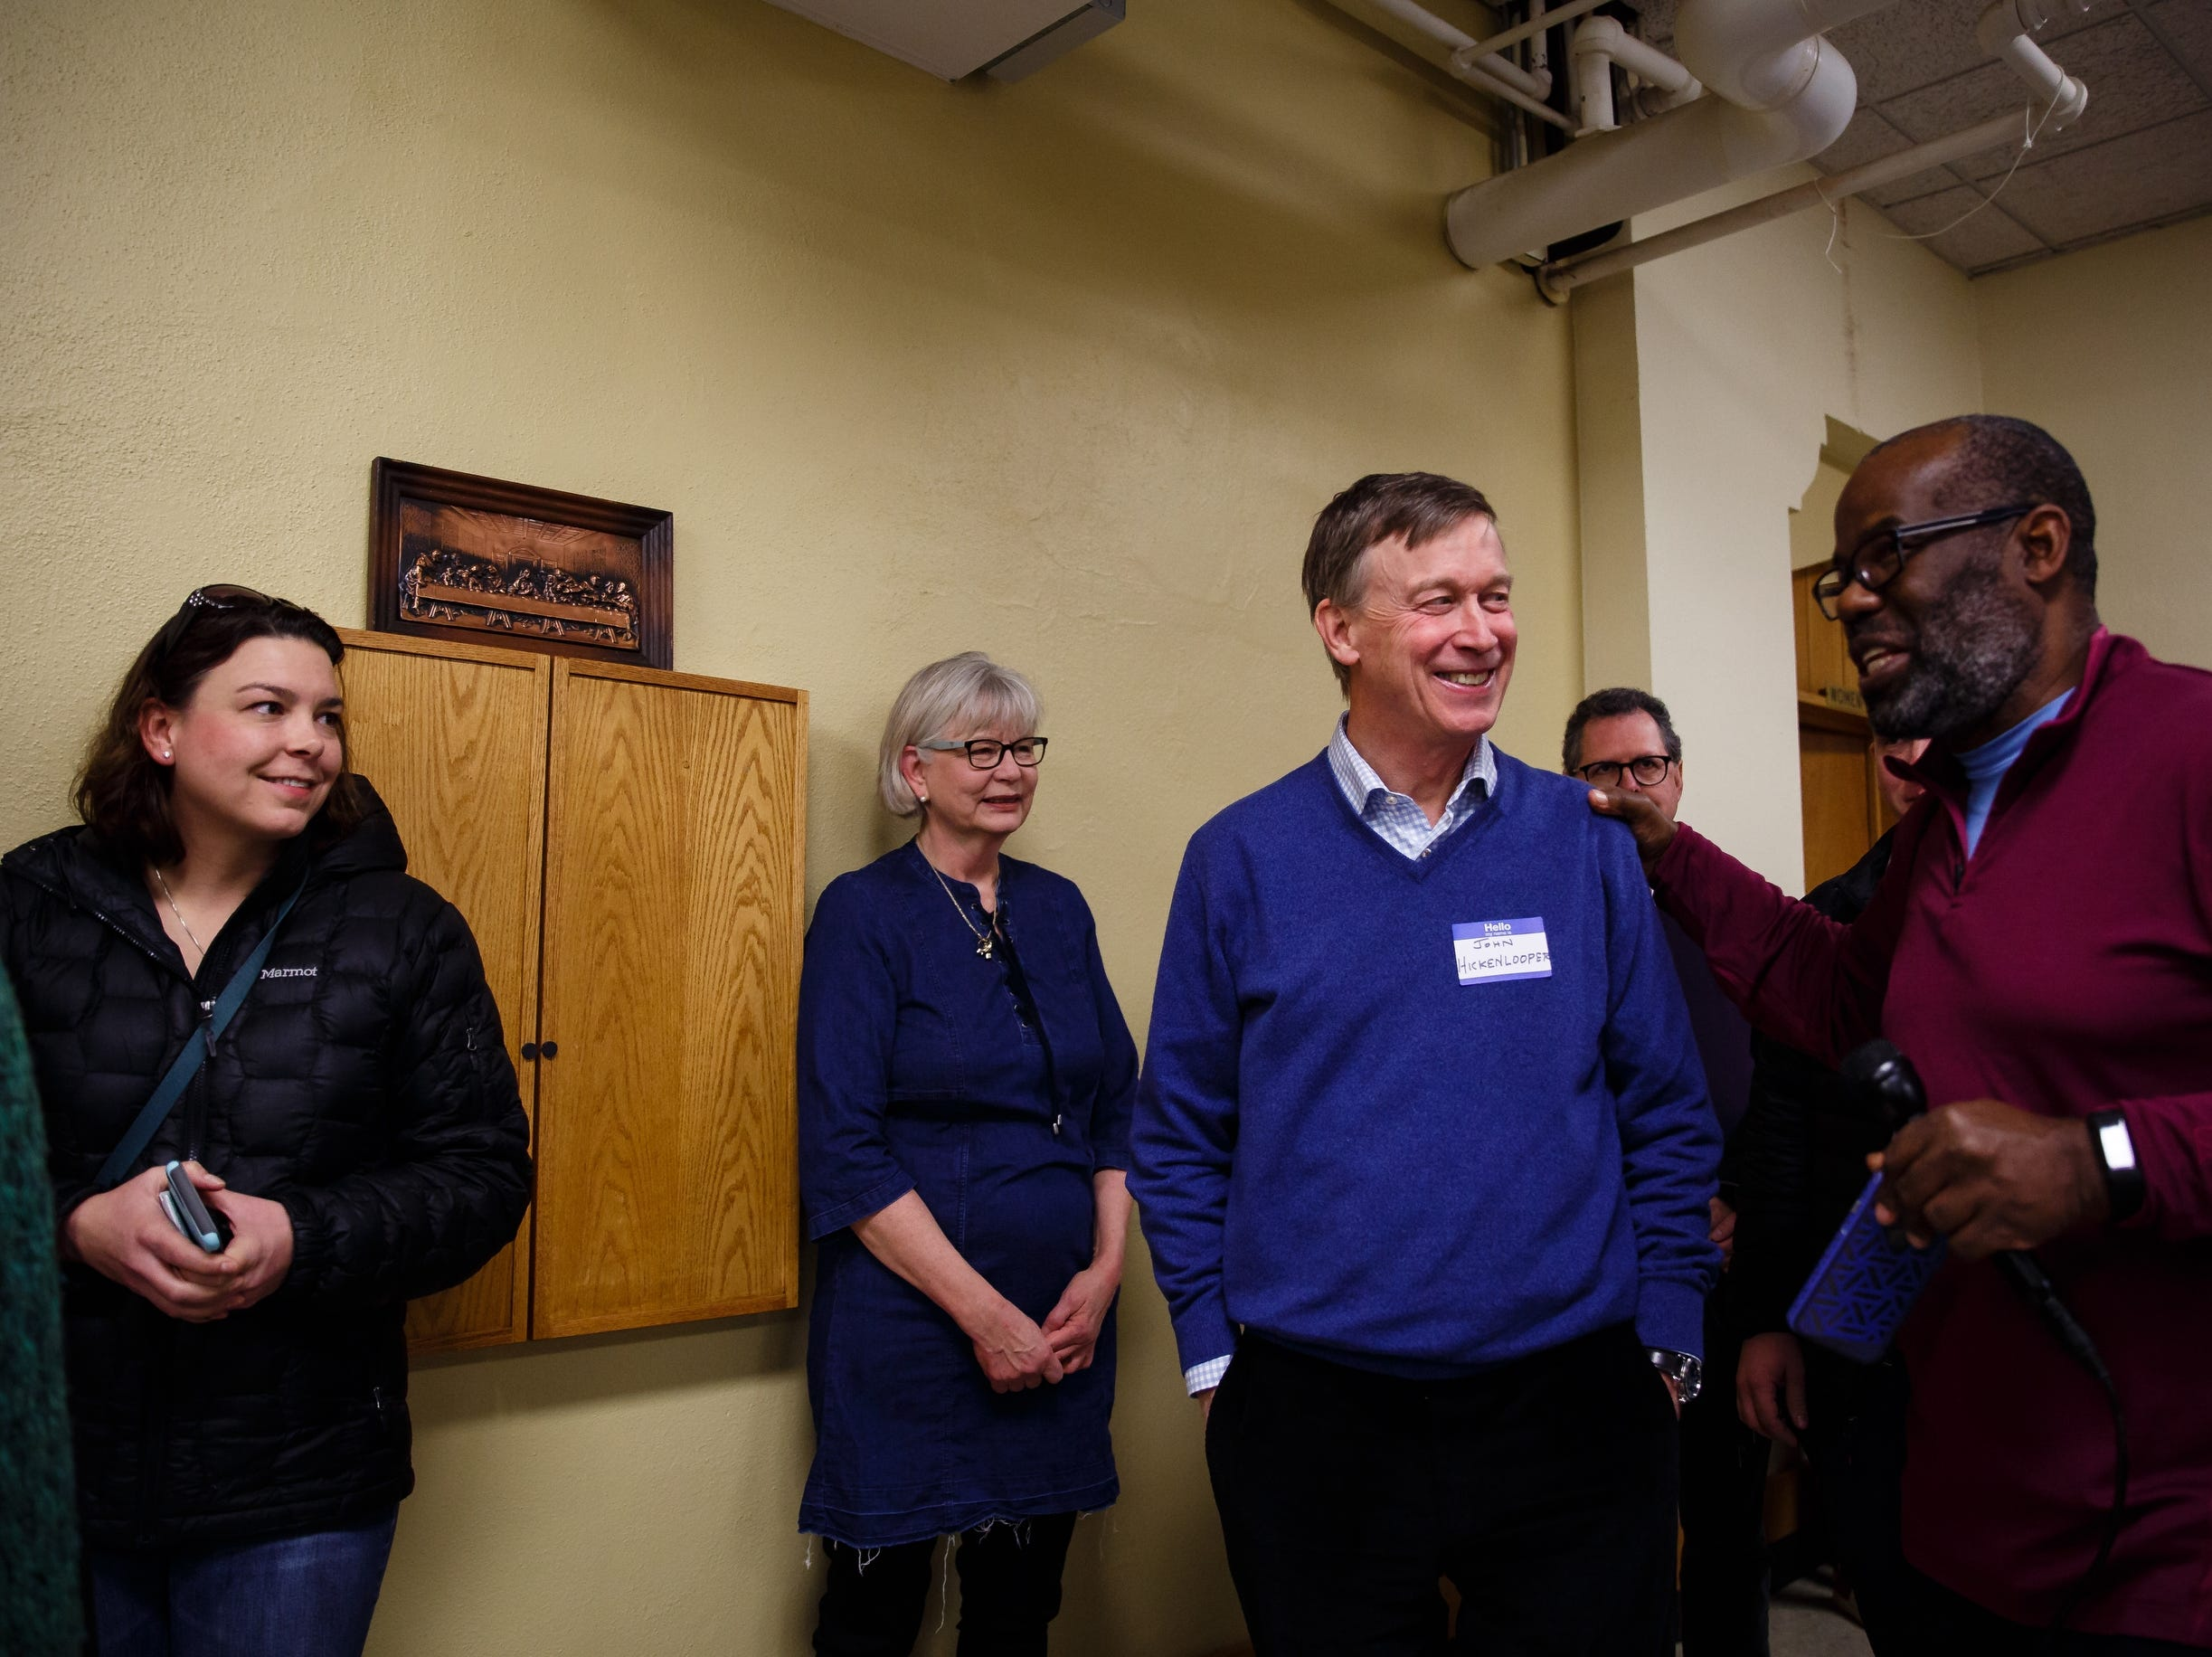 Former Governor of Colorado John Hickenlooper talks to people before speaking at the Story County Democrats: Annual Soup Supper Fundraiser on Saturday, Feb. 23, 2019 in Ames.